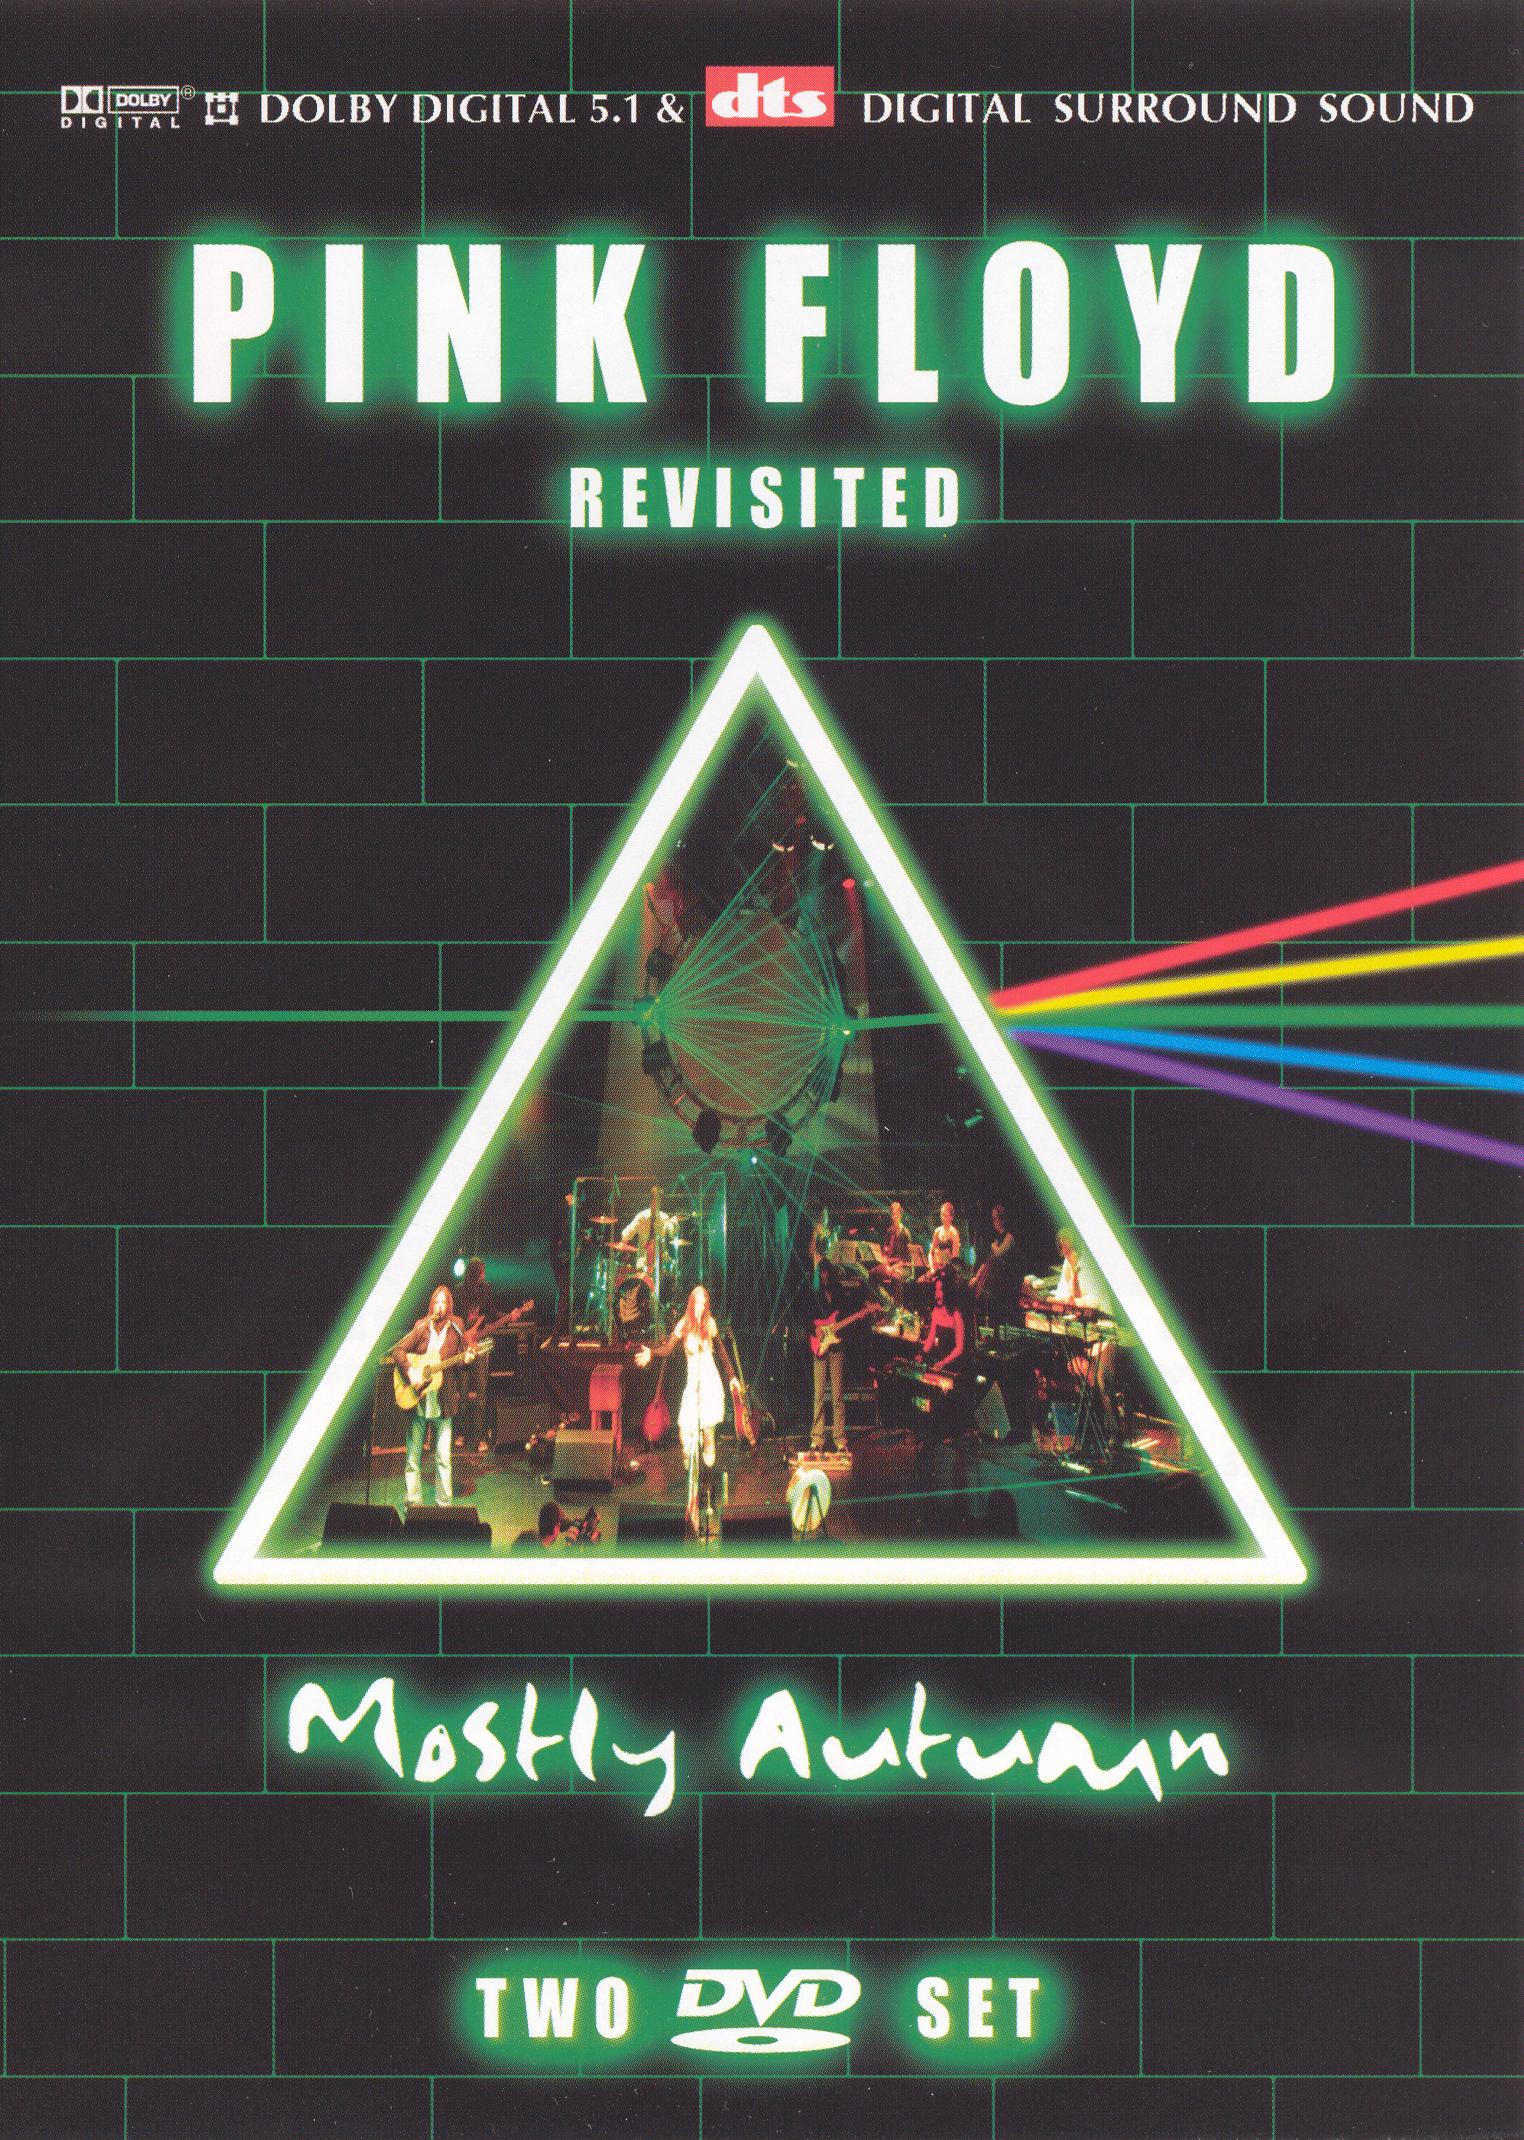 Mostly Autumn: Pink Floyd Revisted